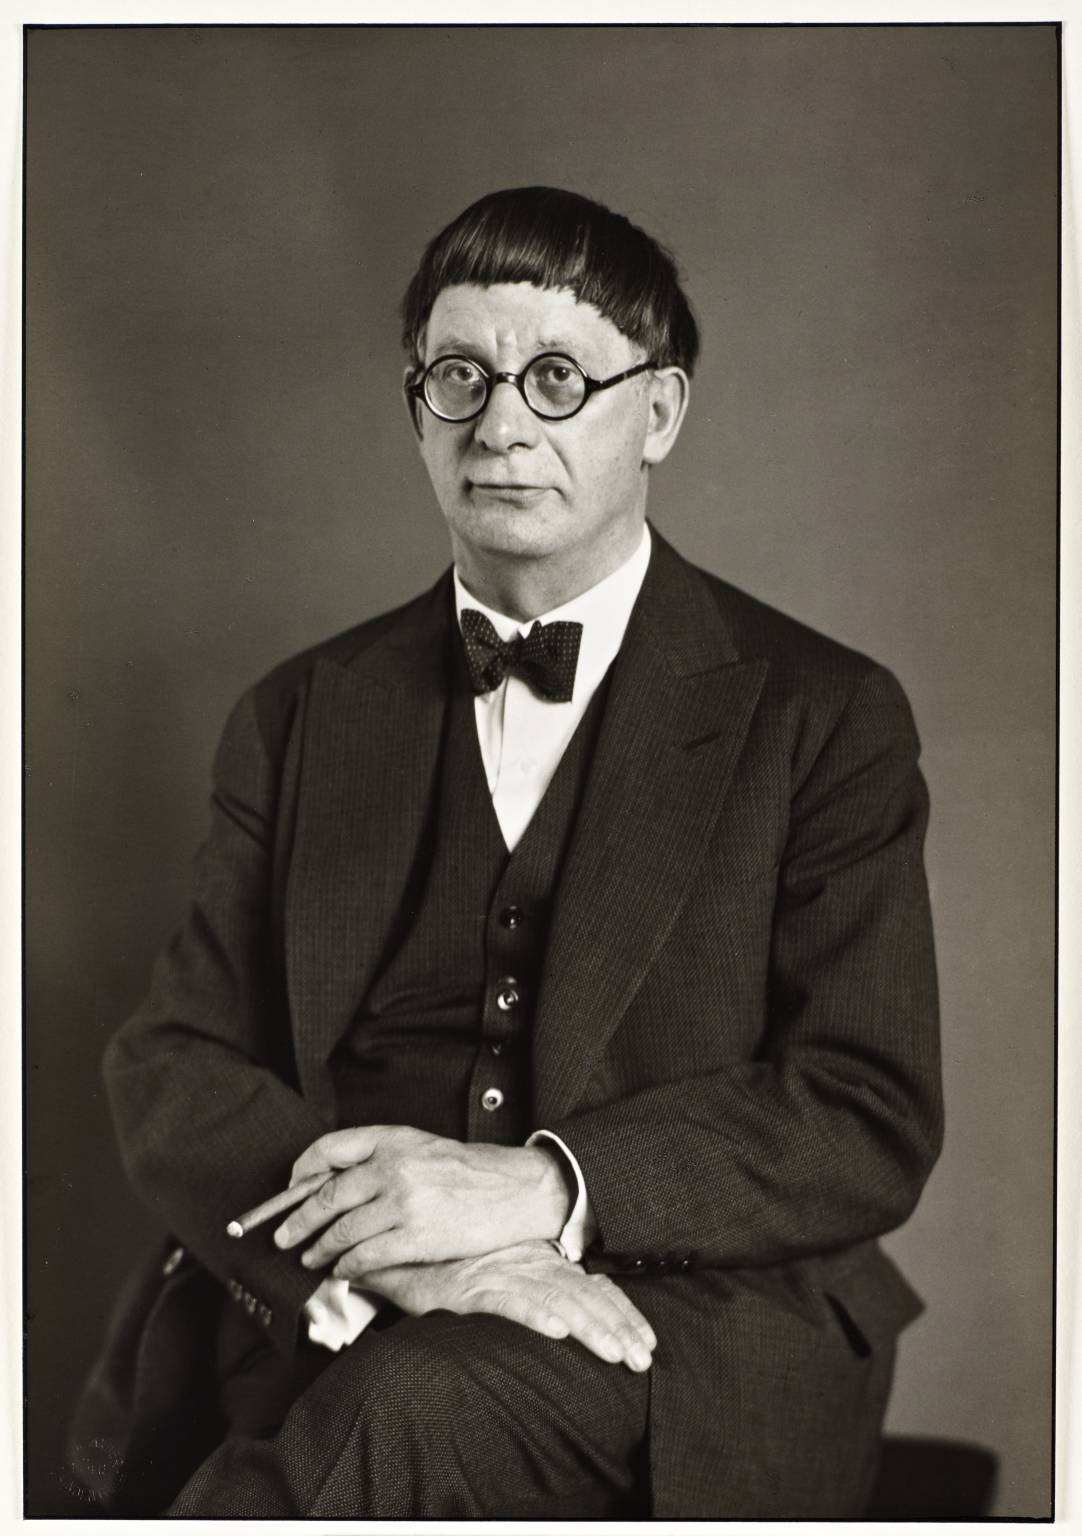 The Architect [Hans Poelzig] 1929 August Sander 1876-1964 ARTIST ROOMS Tate and National Galleries of Scotland. Lent by Anthony d'Offay 2010